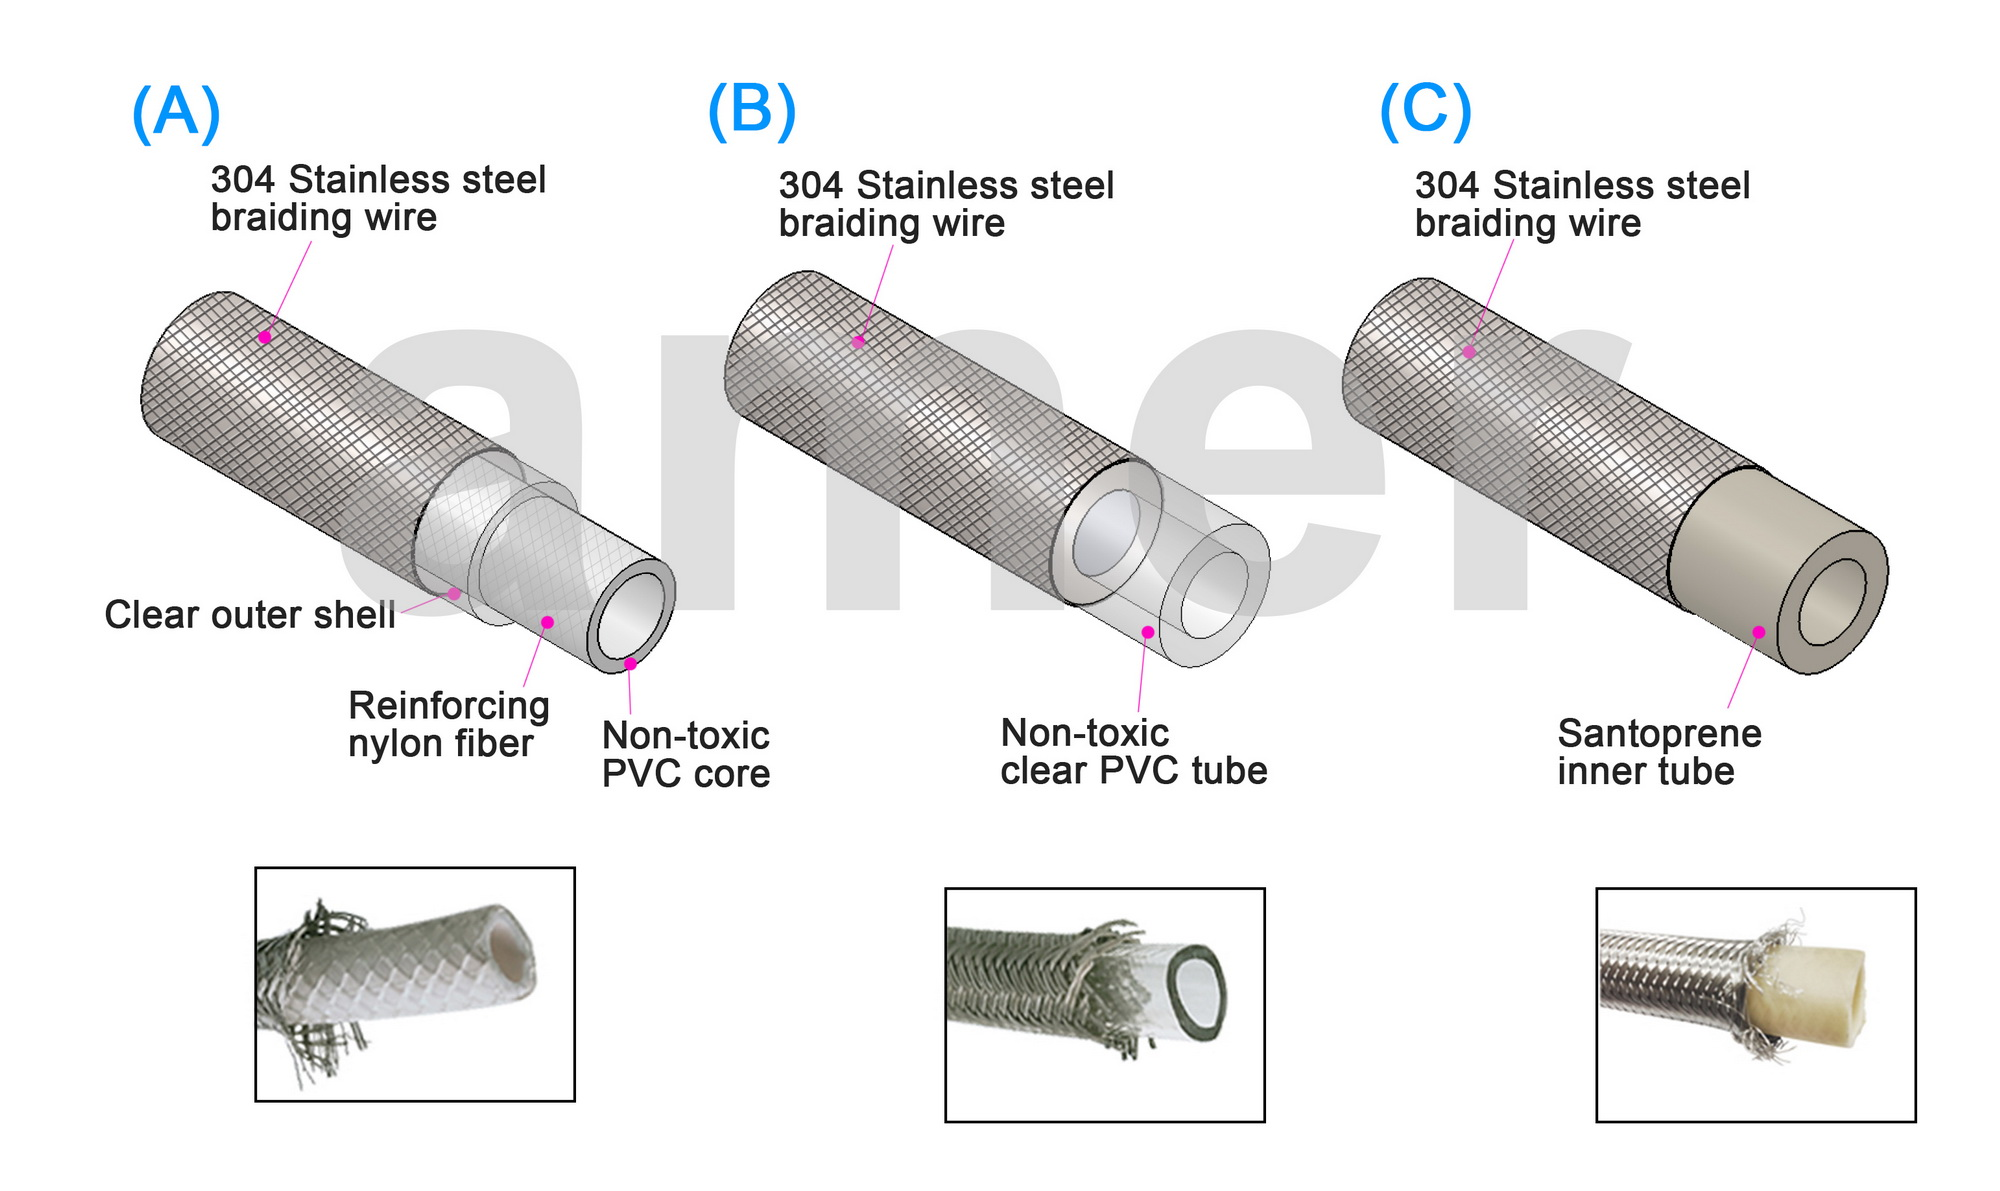 drawing PVC inner tube of water supply line